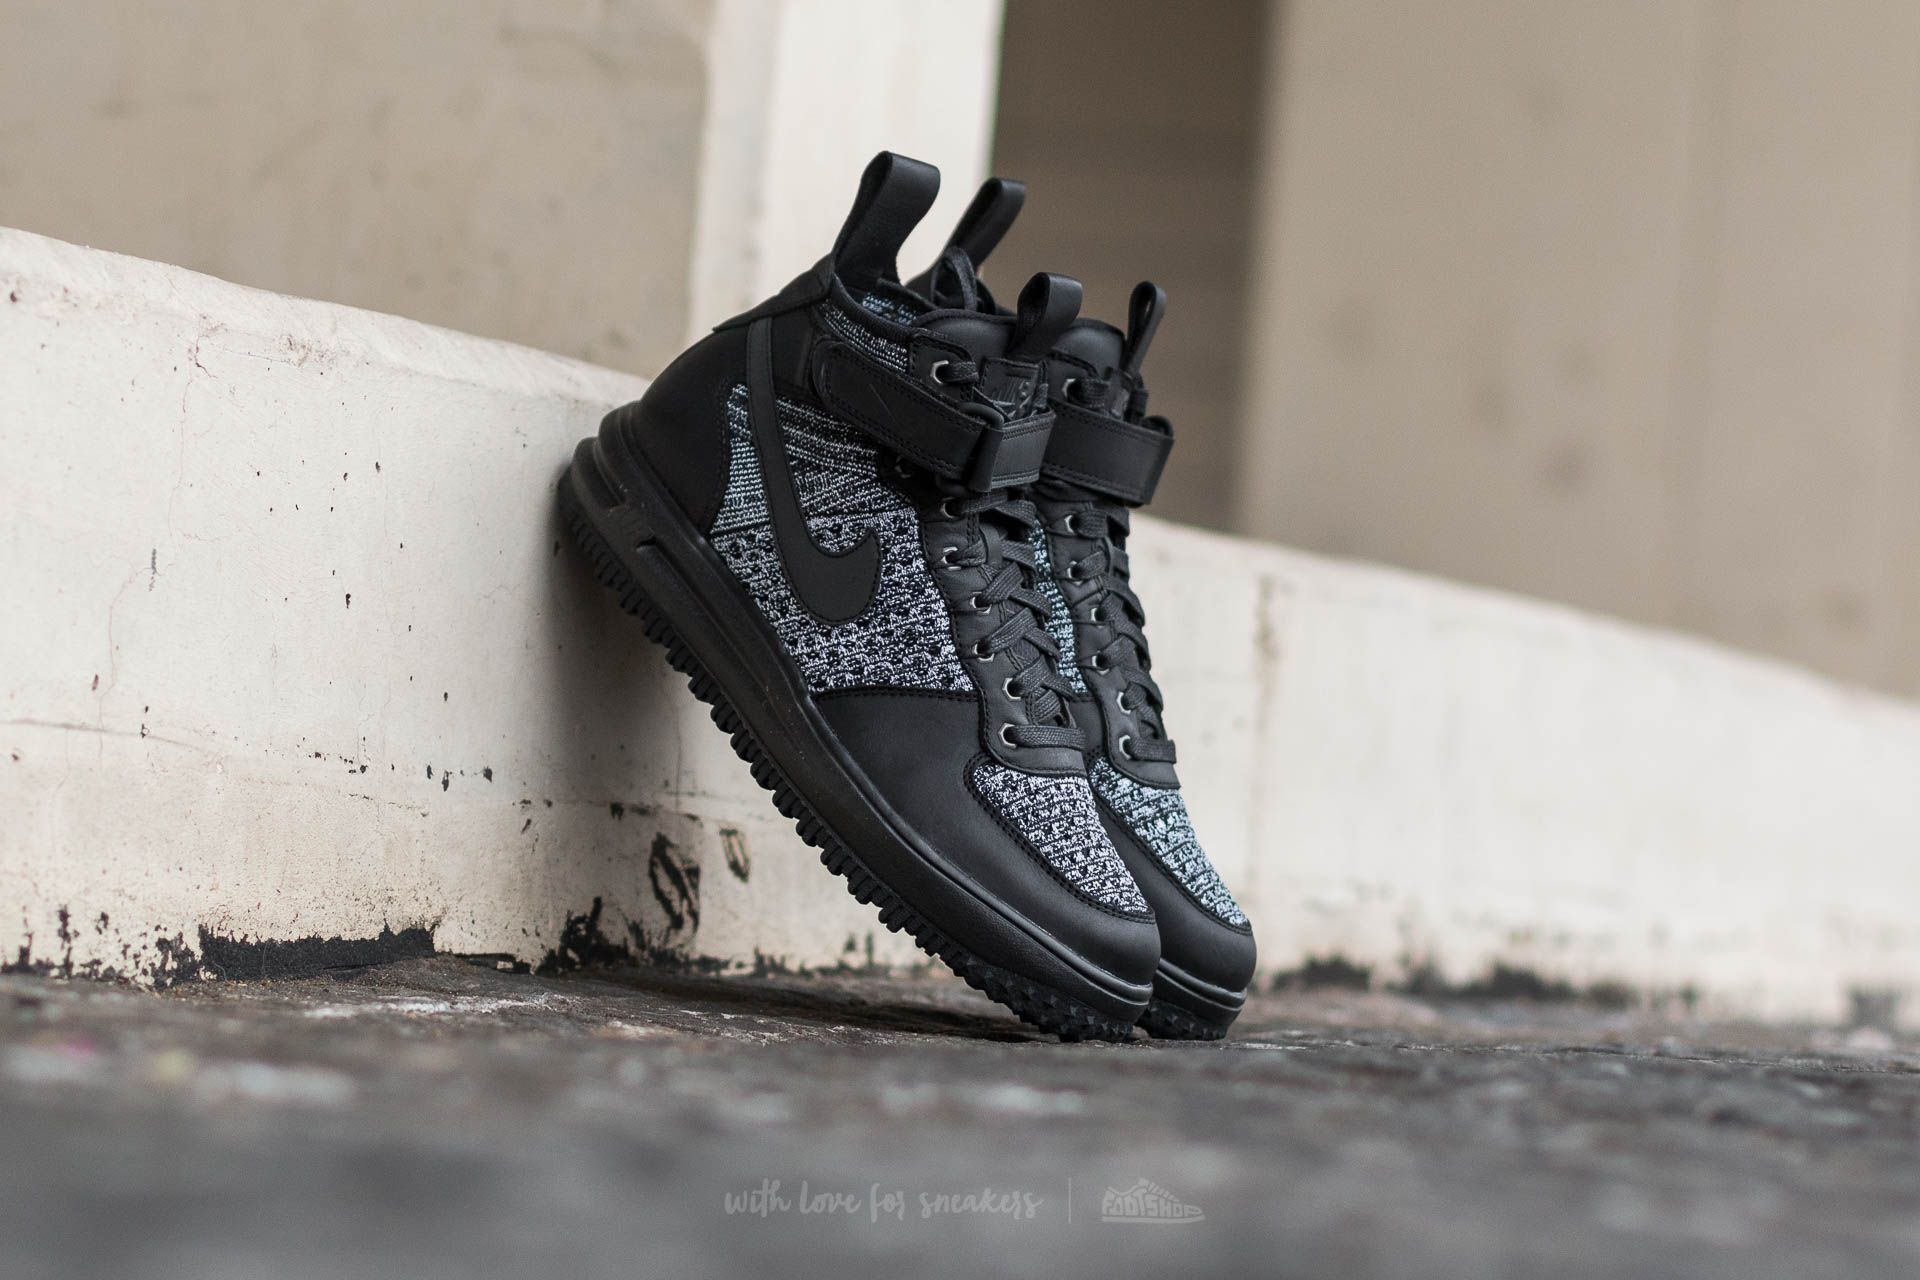 Nike W Lunar Force 1 Flyknit Workboot Black  Black-White-Cool Grey ... 56e56e24ab